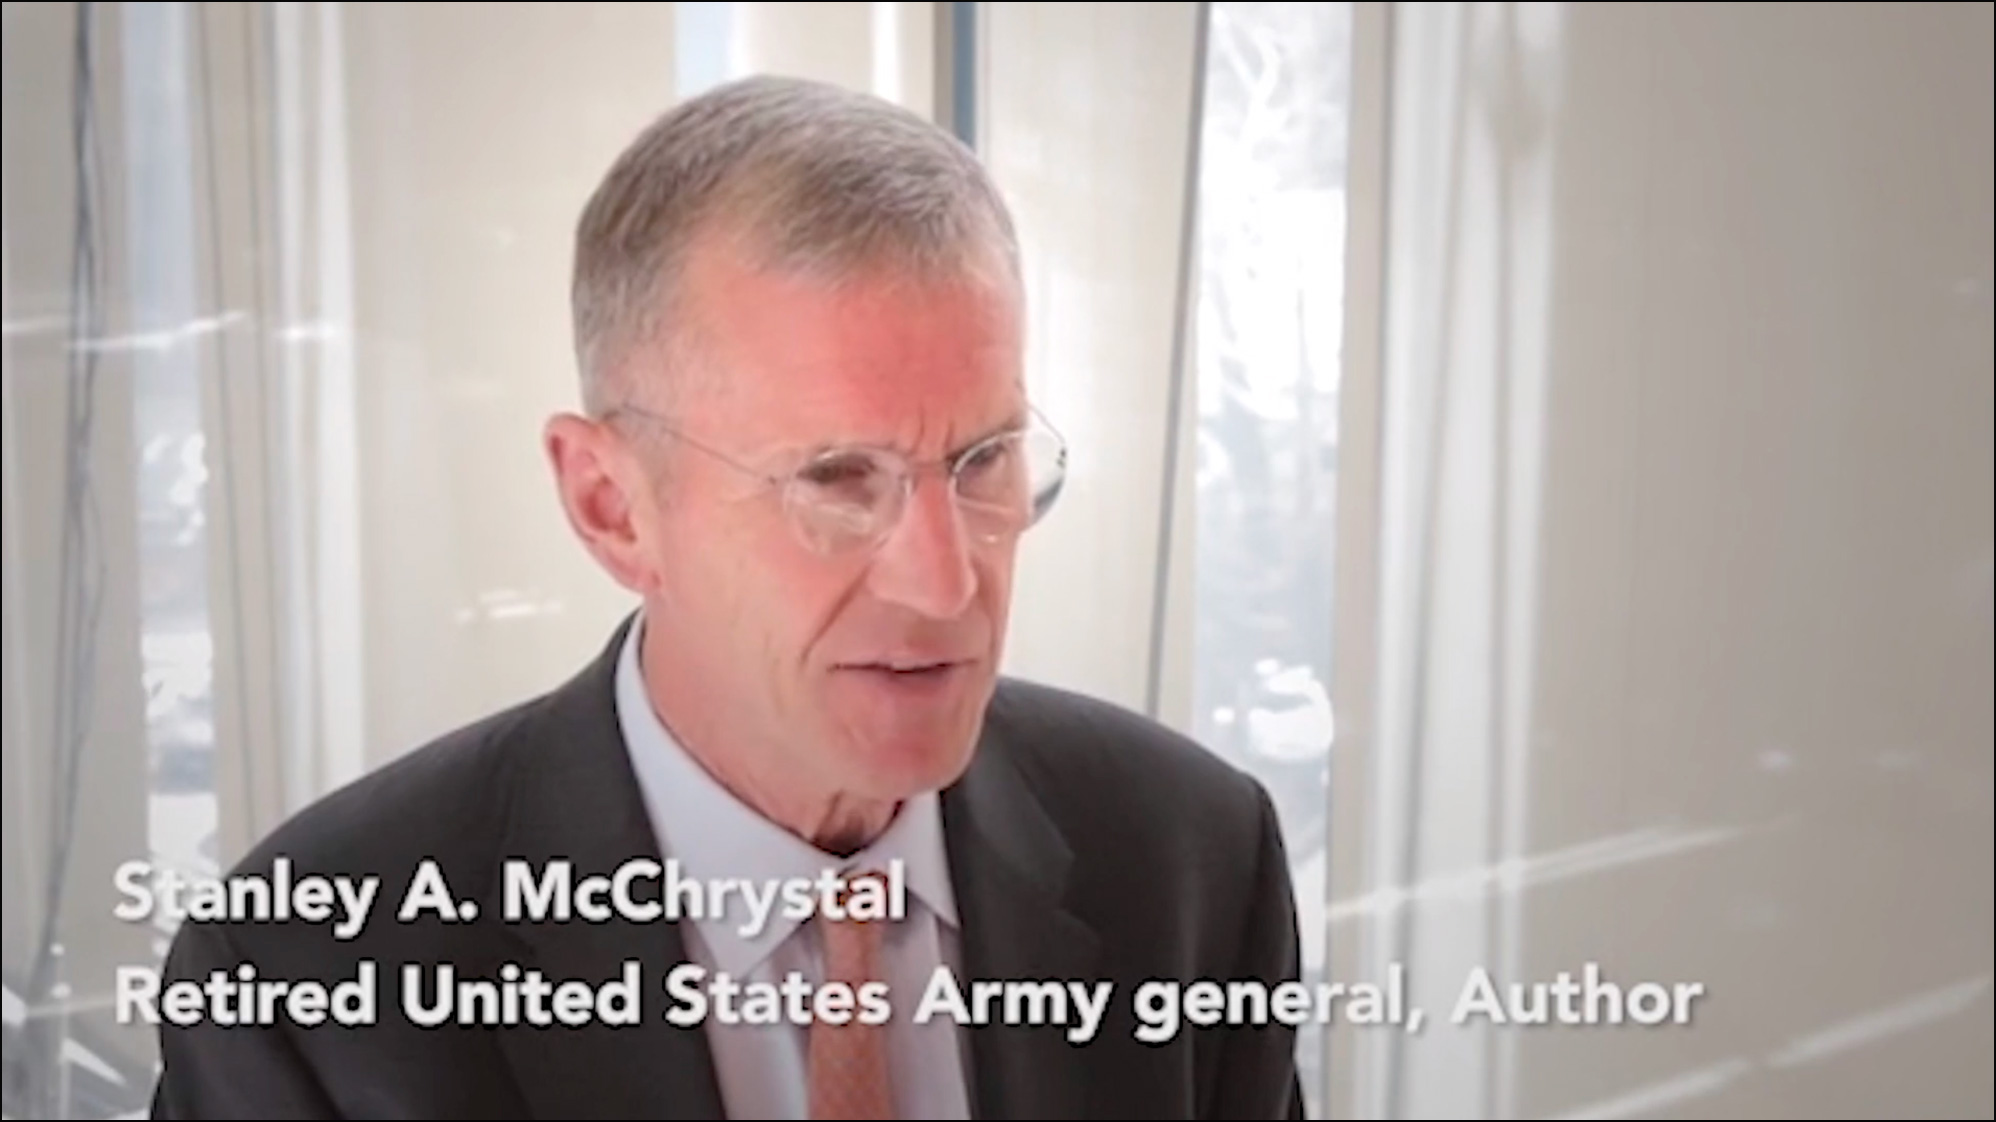 Gen. Stanely McChrystal, keynote Lecturer at the 2018 Safety in Spine Surgery Summit, sharing his thoughts on how teams impact spine surgery safety.